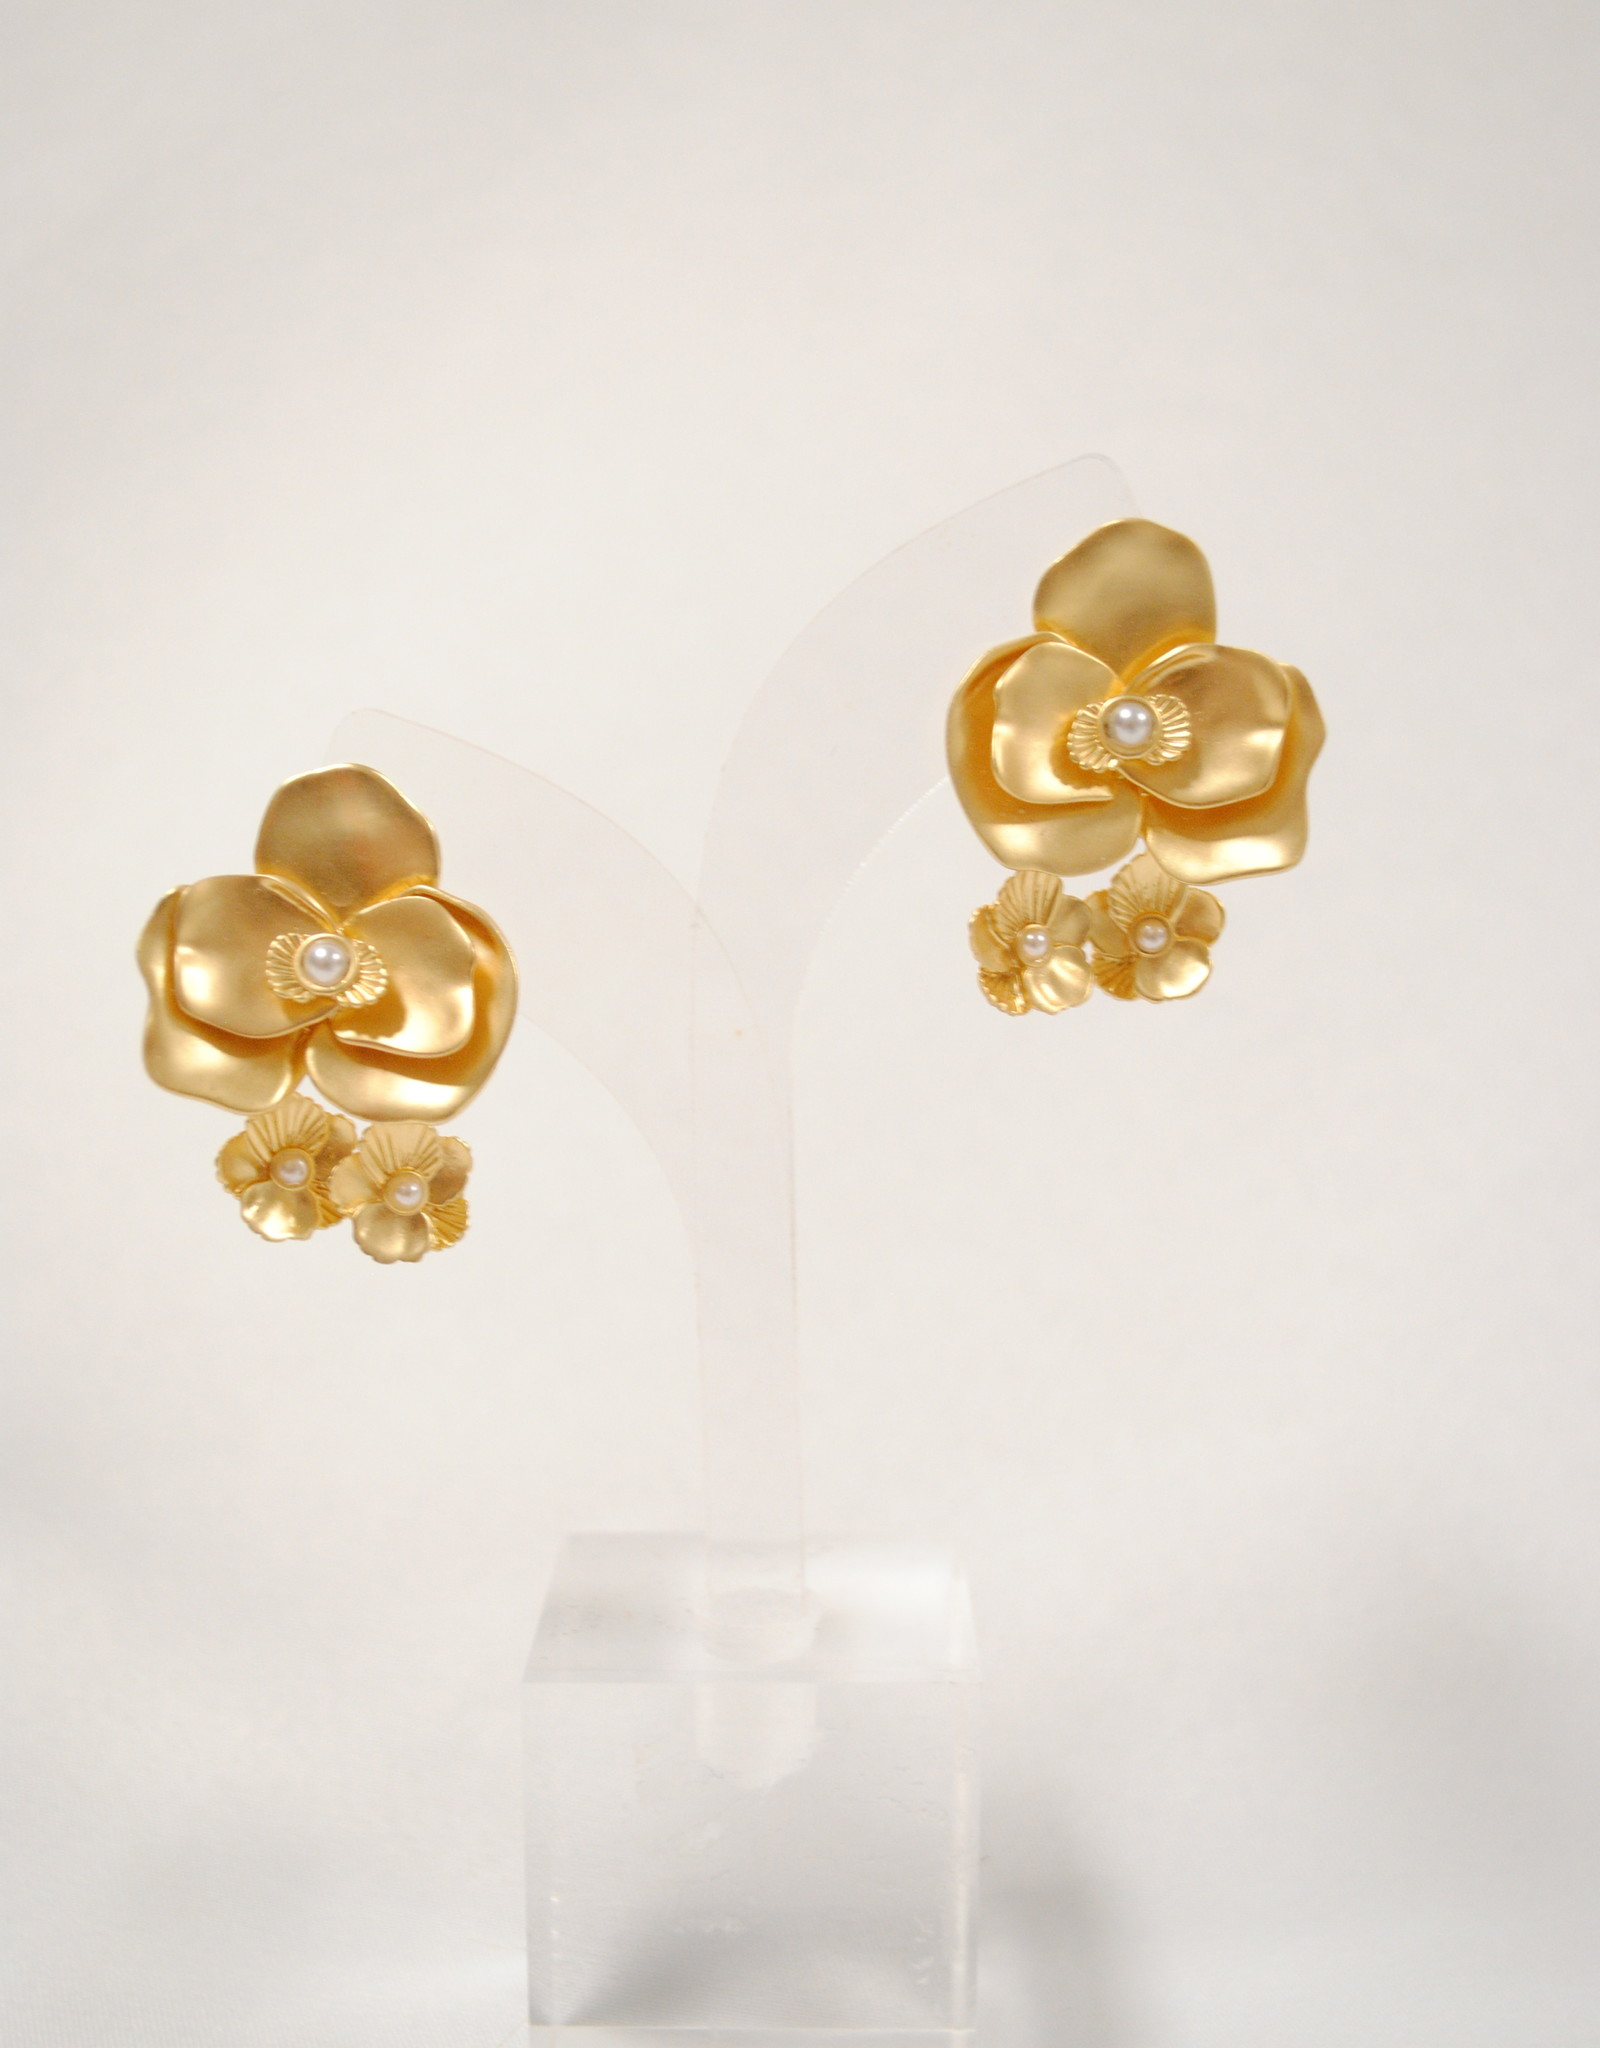 Anna Cate Gold and Pearl Earrings